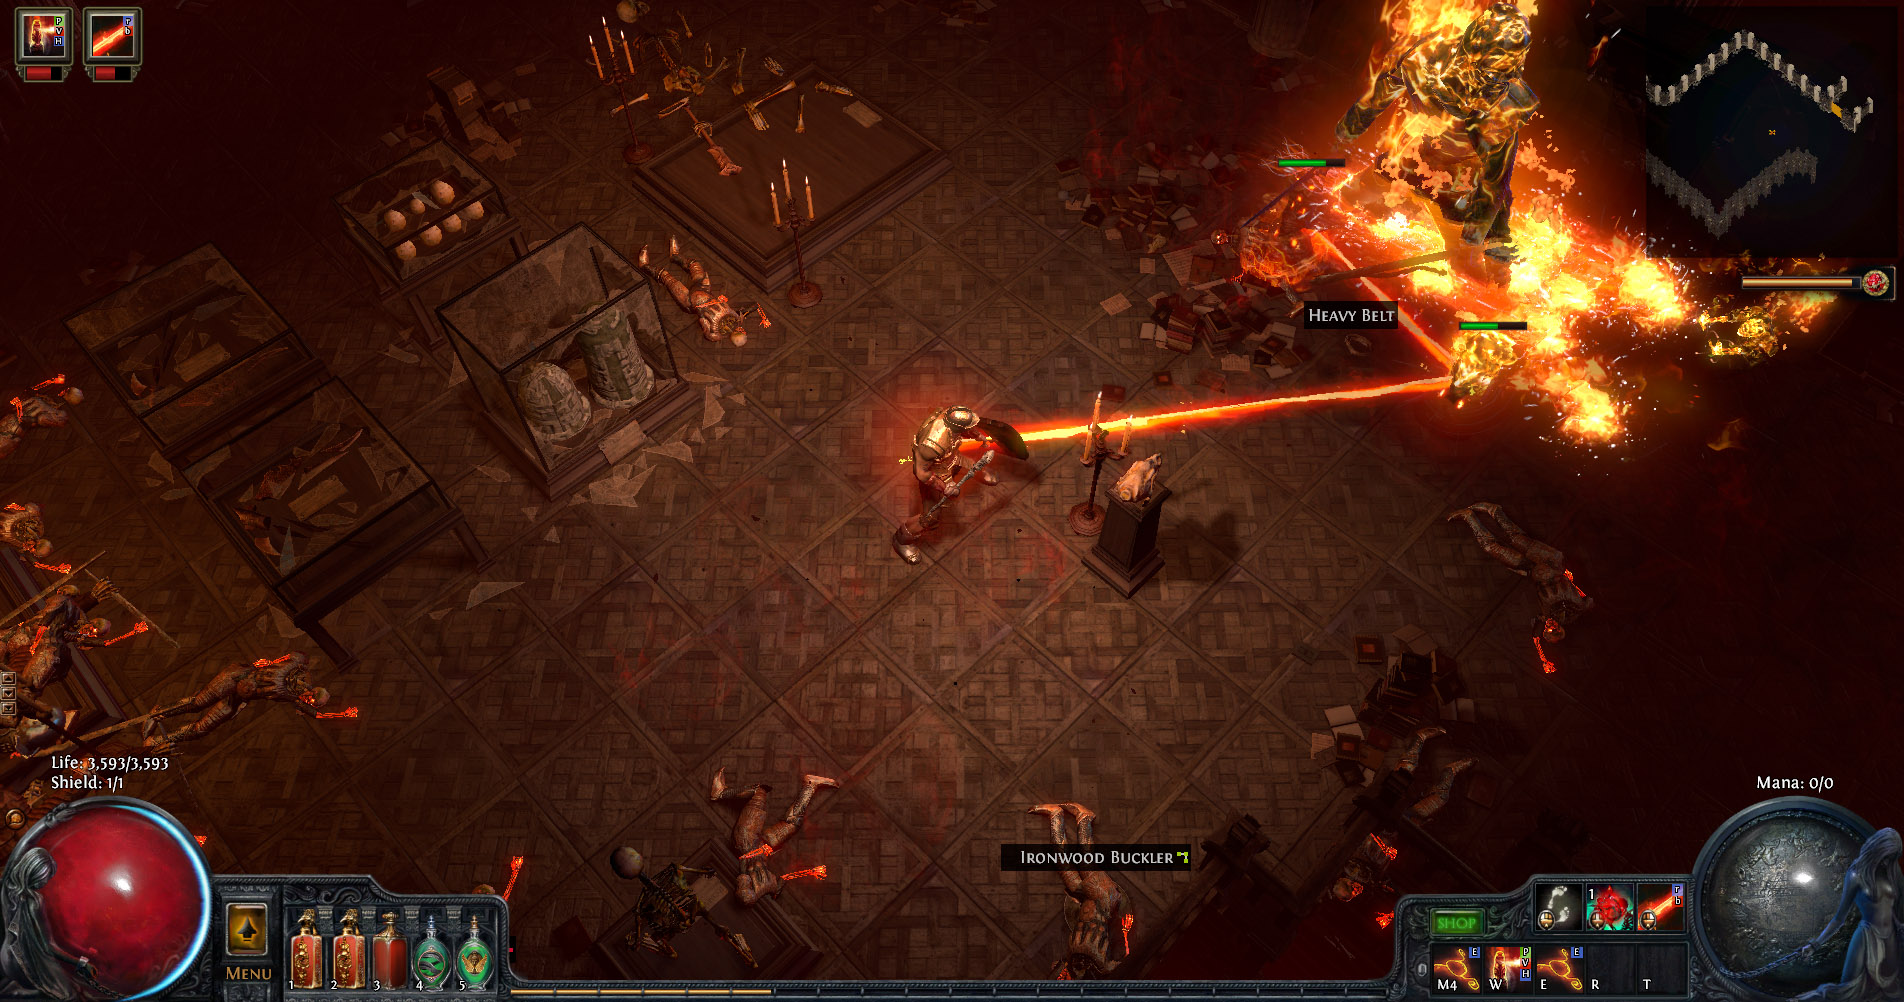 Same with giving Path of Exile bosses a resolve bar